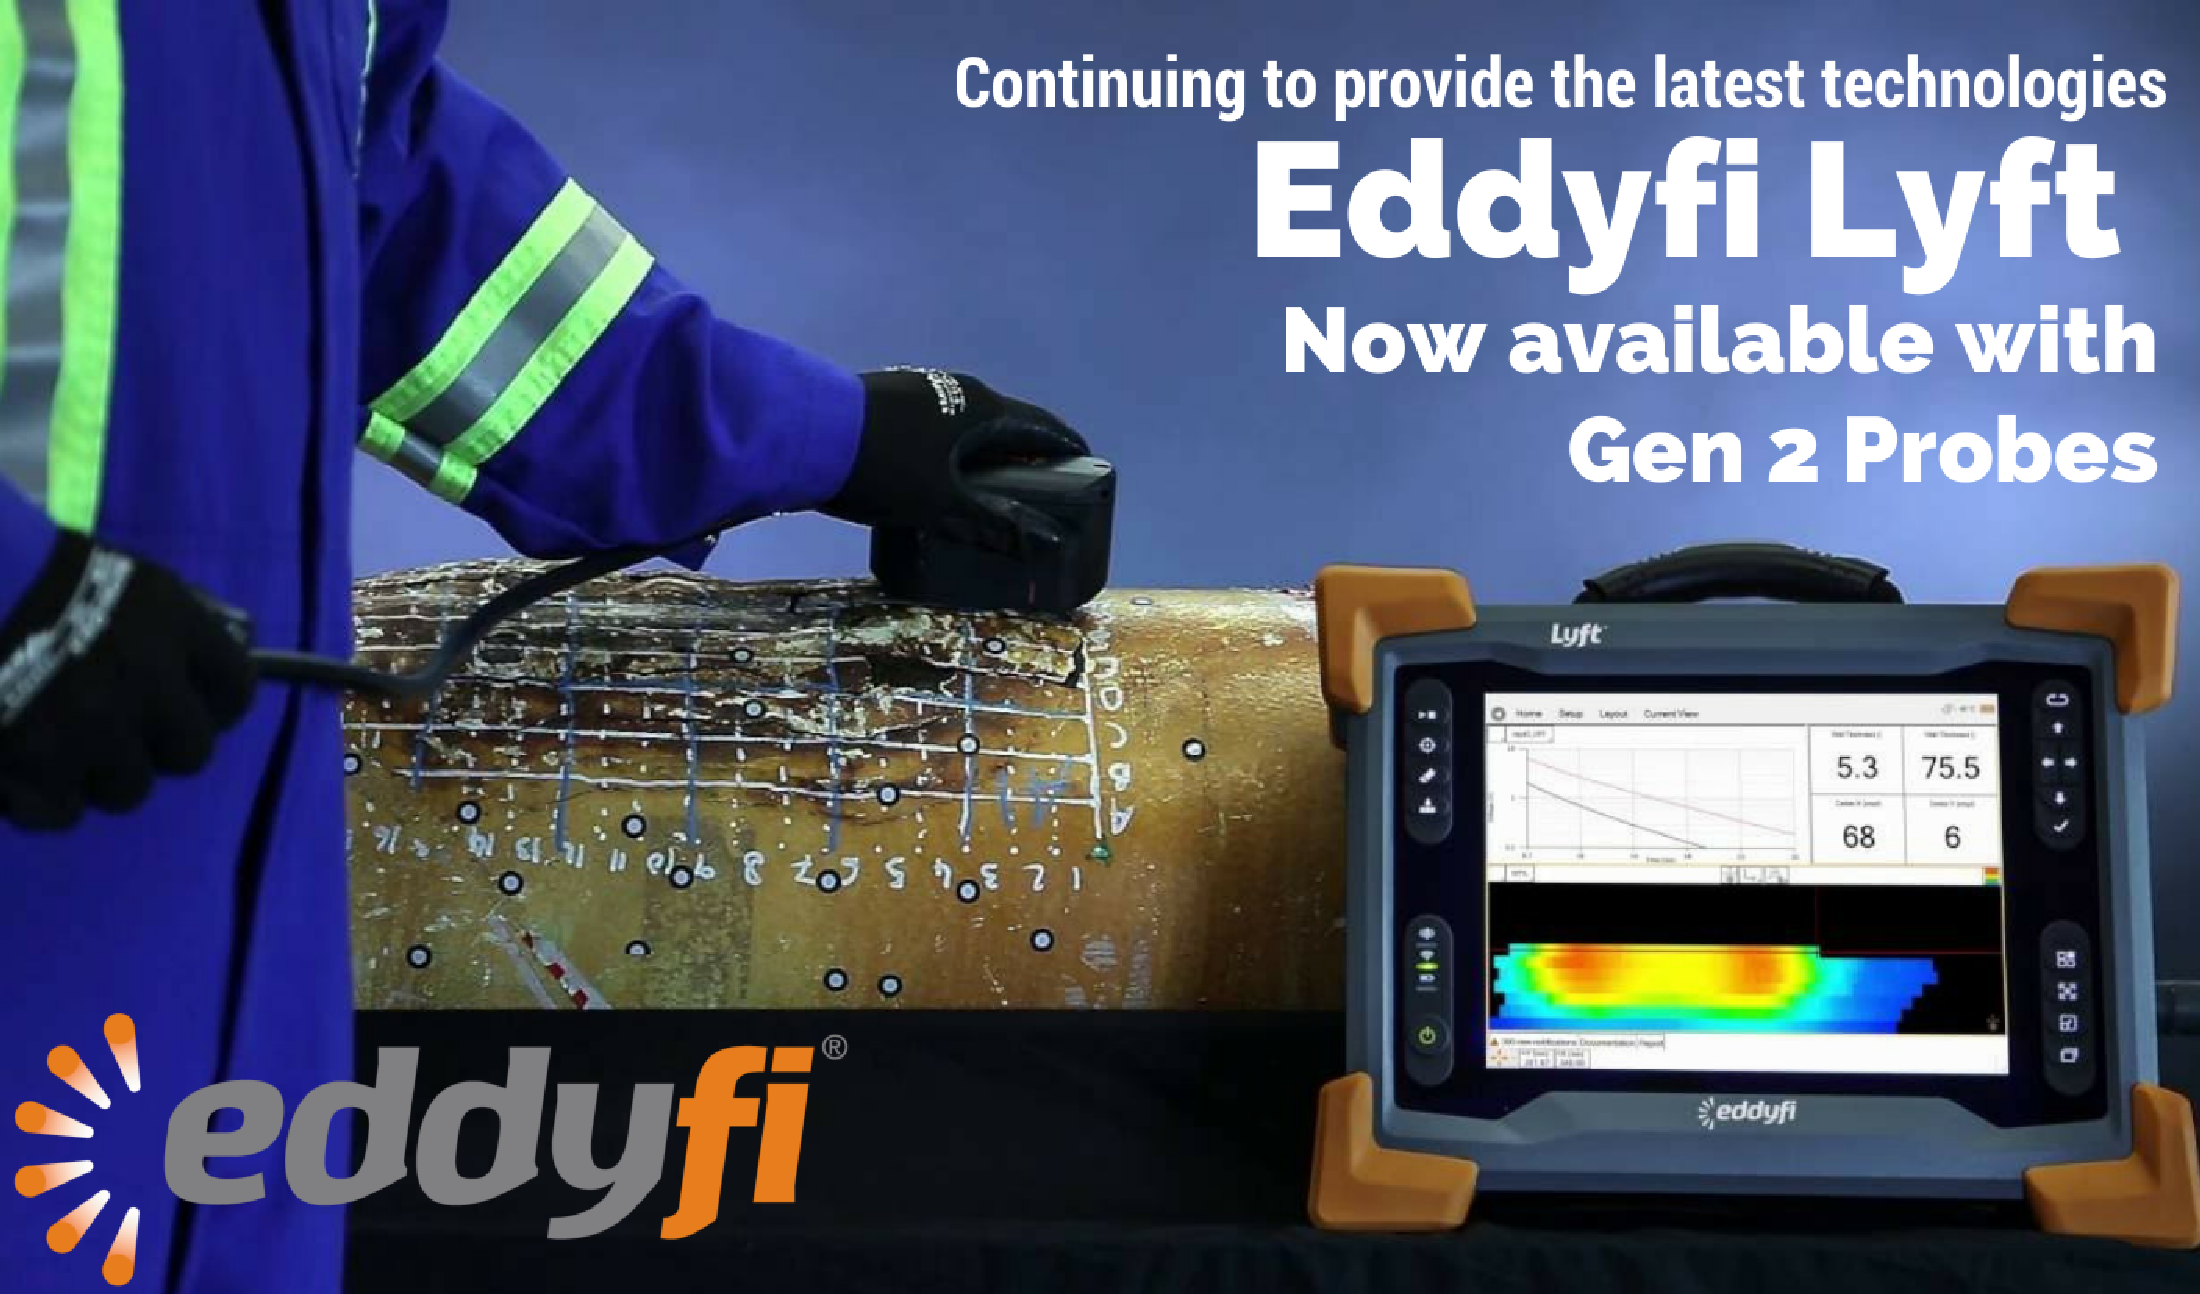 OCEANSCAN IS PROUD TO CALL THEMSELVES EDDYFI'S PREFERRED RENTAL PARTNER